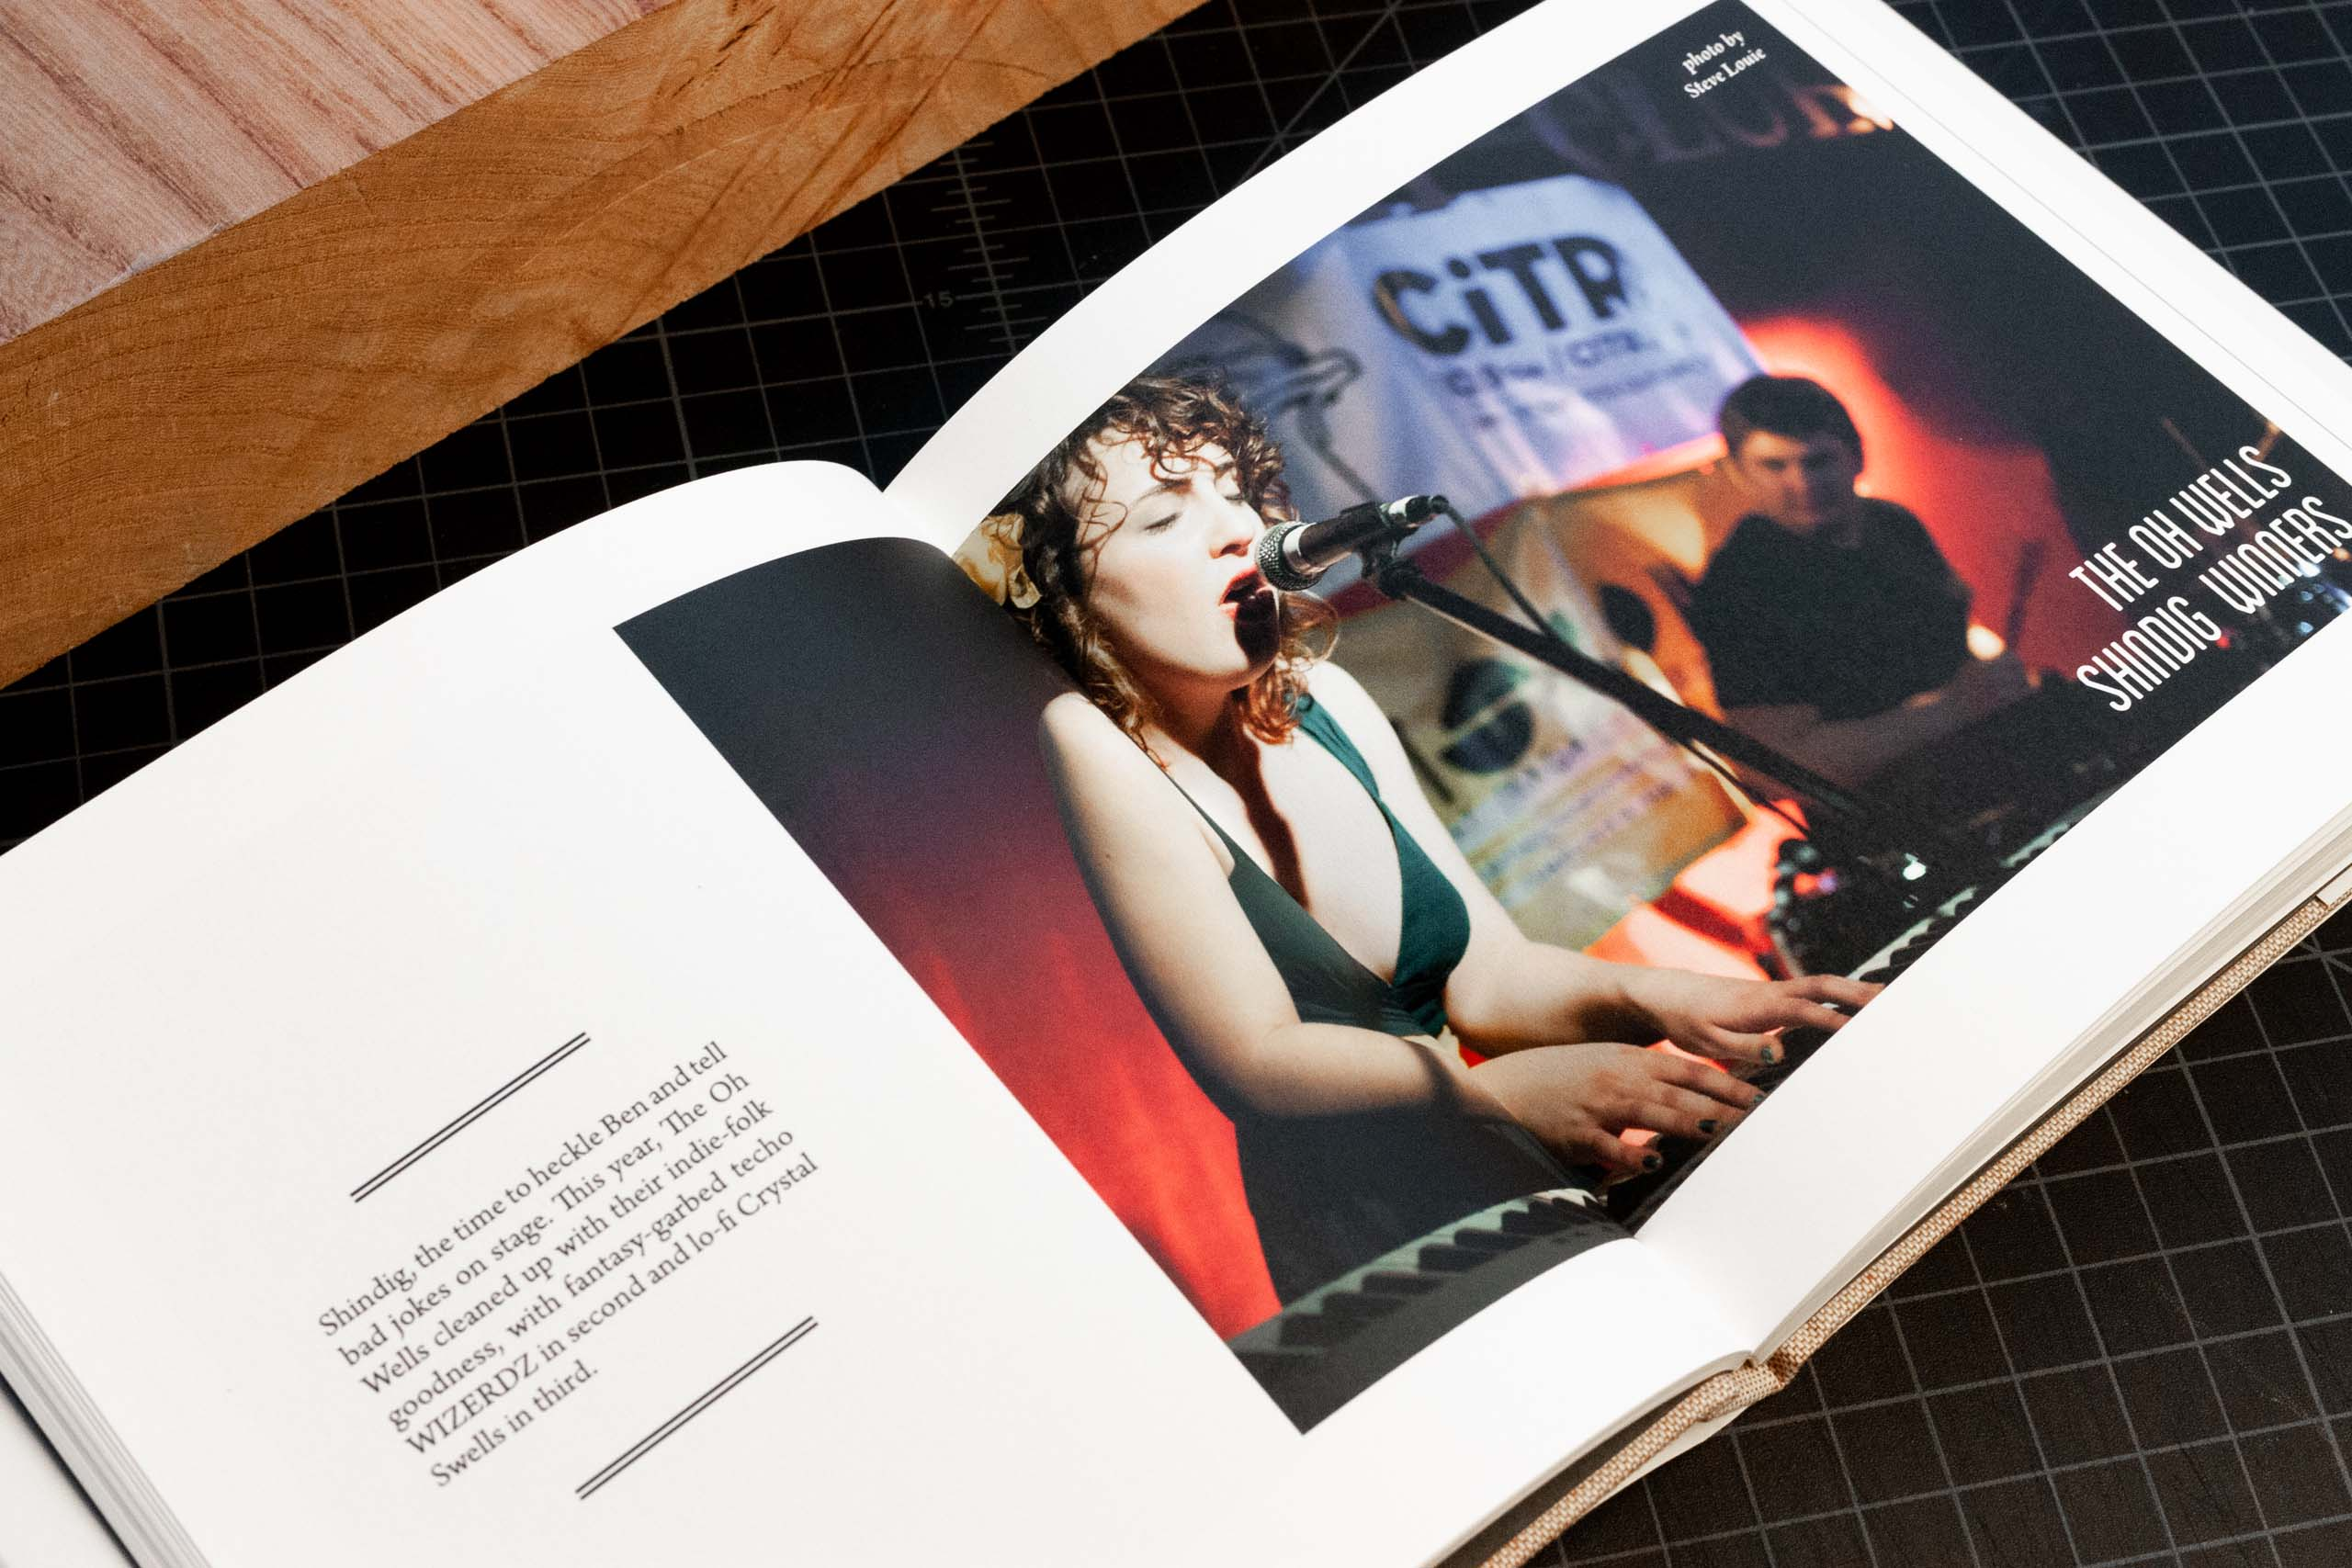 Annual Report for CiTR radio featuring a photo of Sarah Jickling the lead singer of 'The Oh Wells' playing at the Shindig competition — by Yagnyuk.